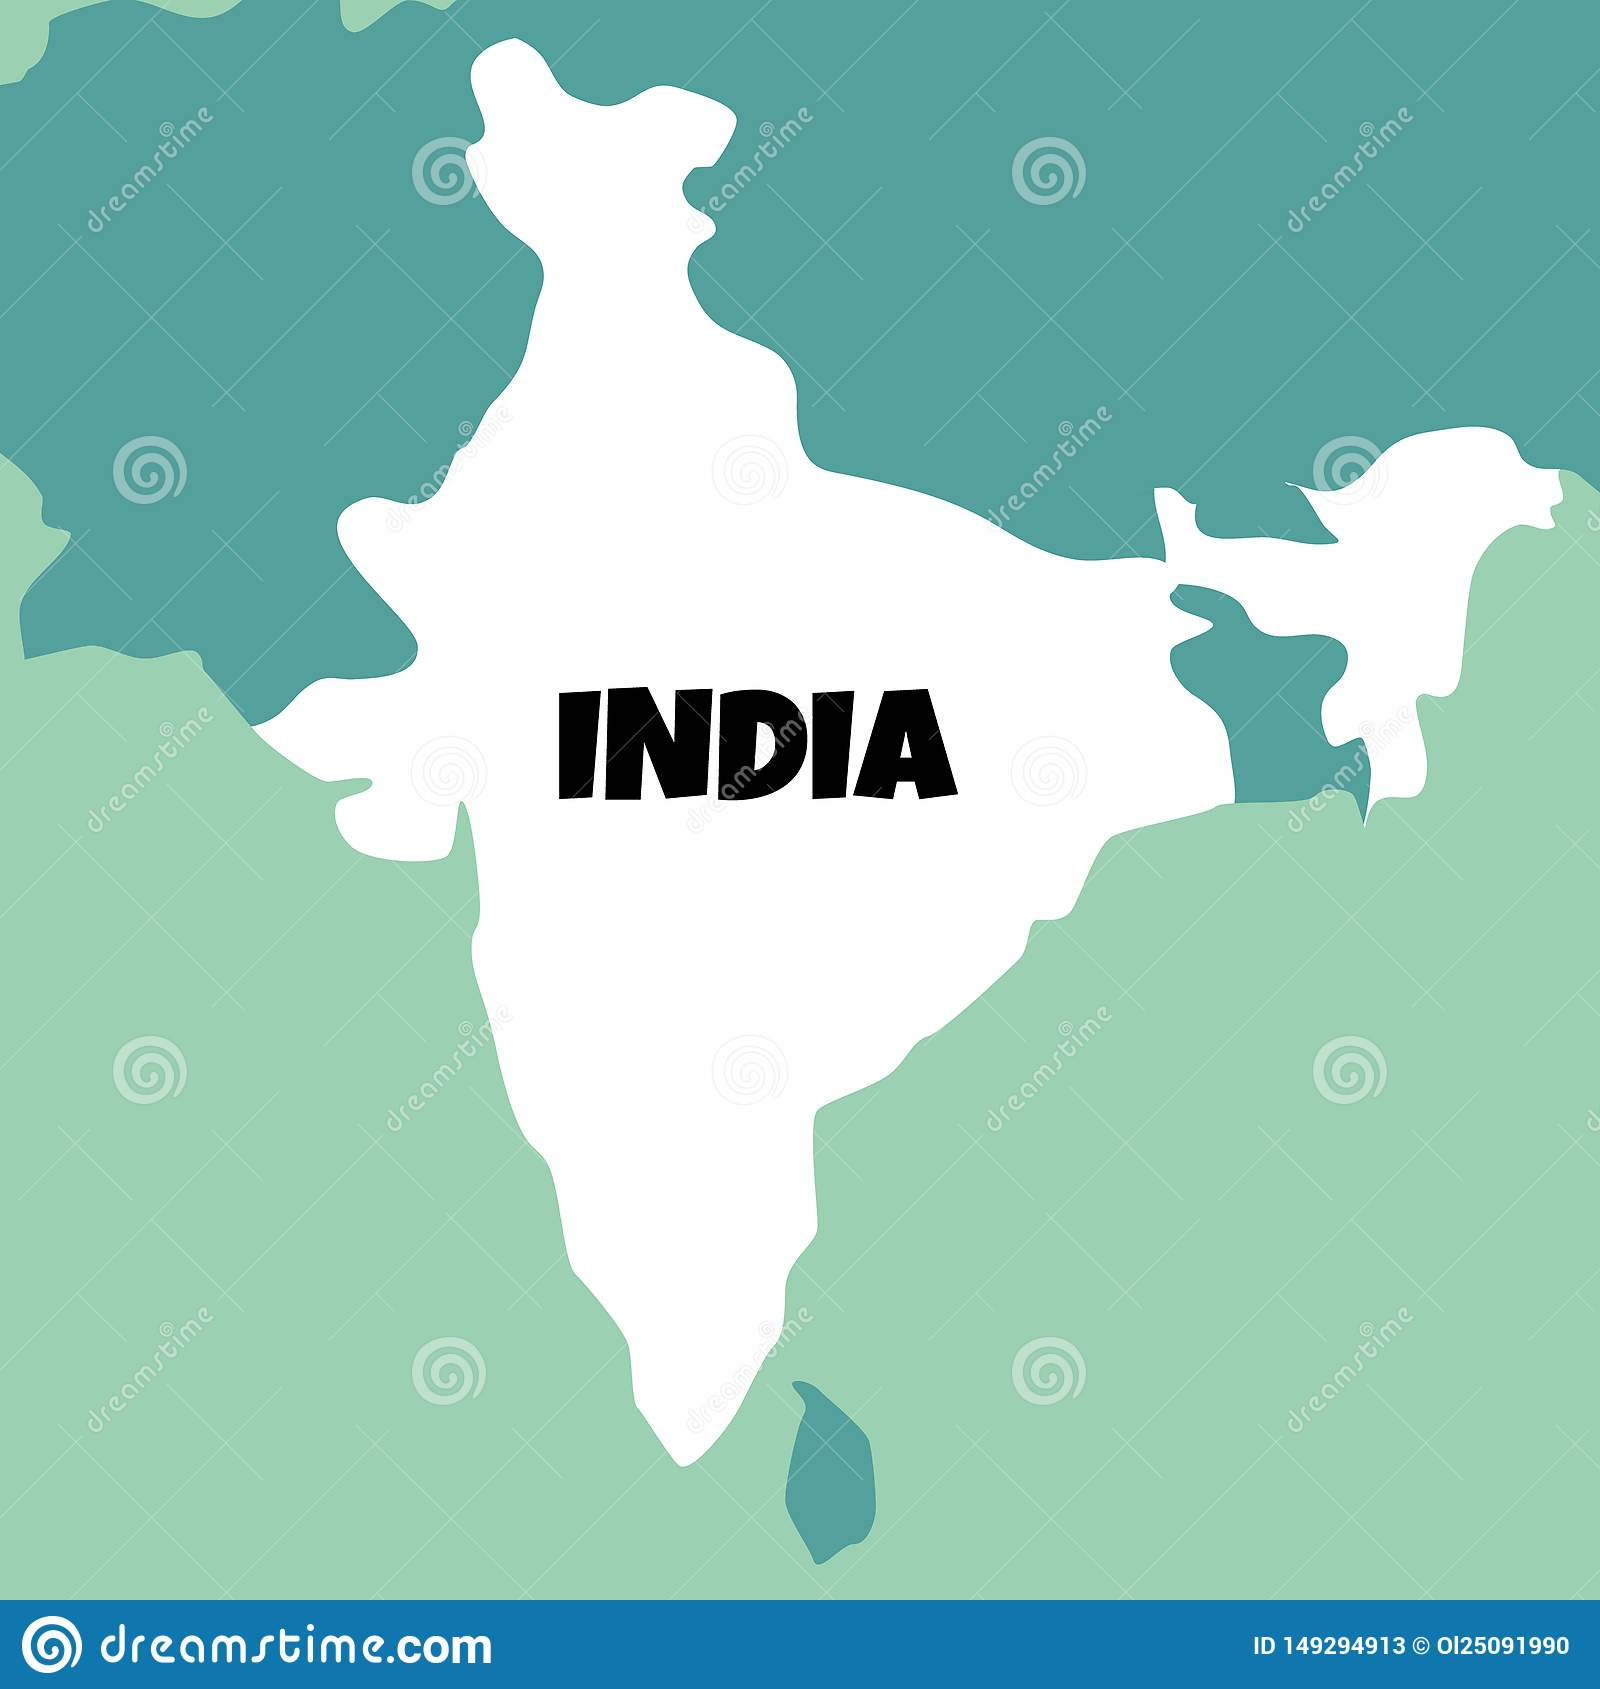 Illustration Of Detailed Map Of India Stock Illustration ... on topographic maps, download icons, download london tube map, download business maps, download bing maps, online maps,